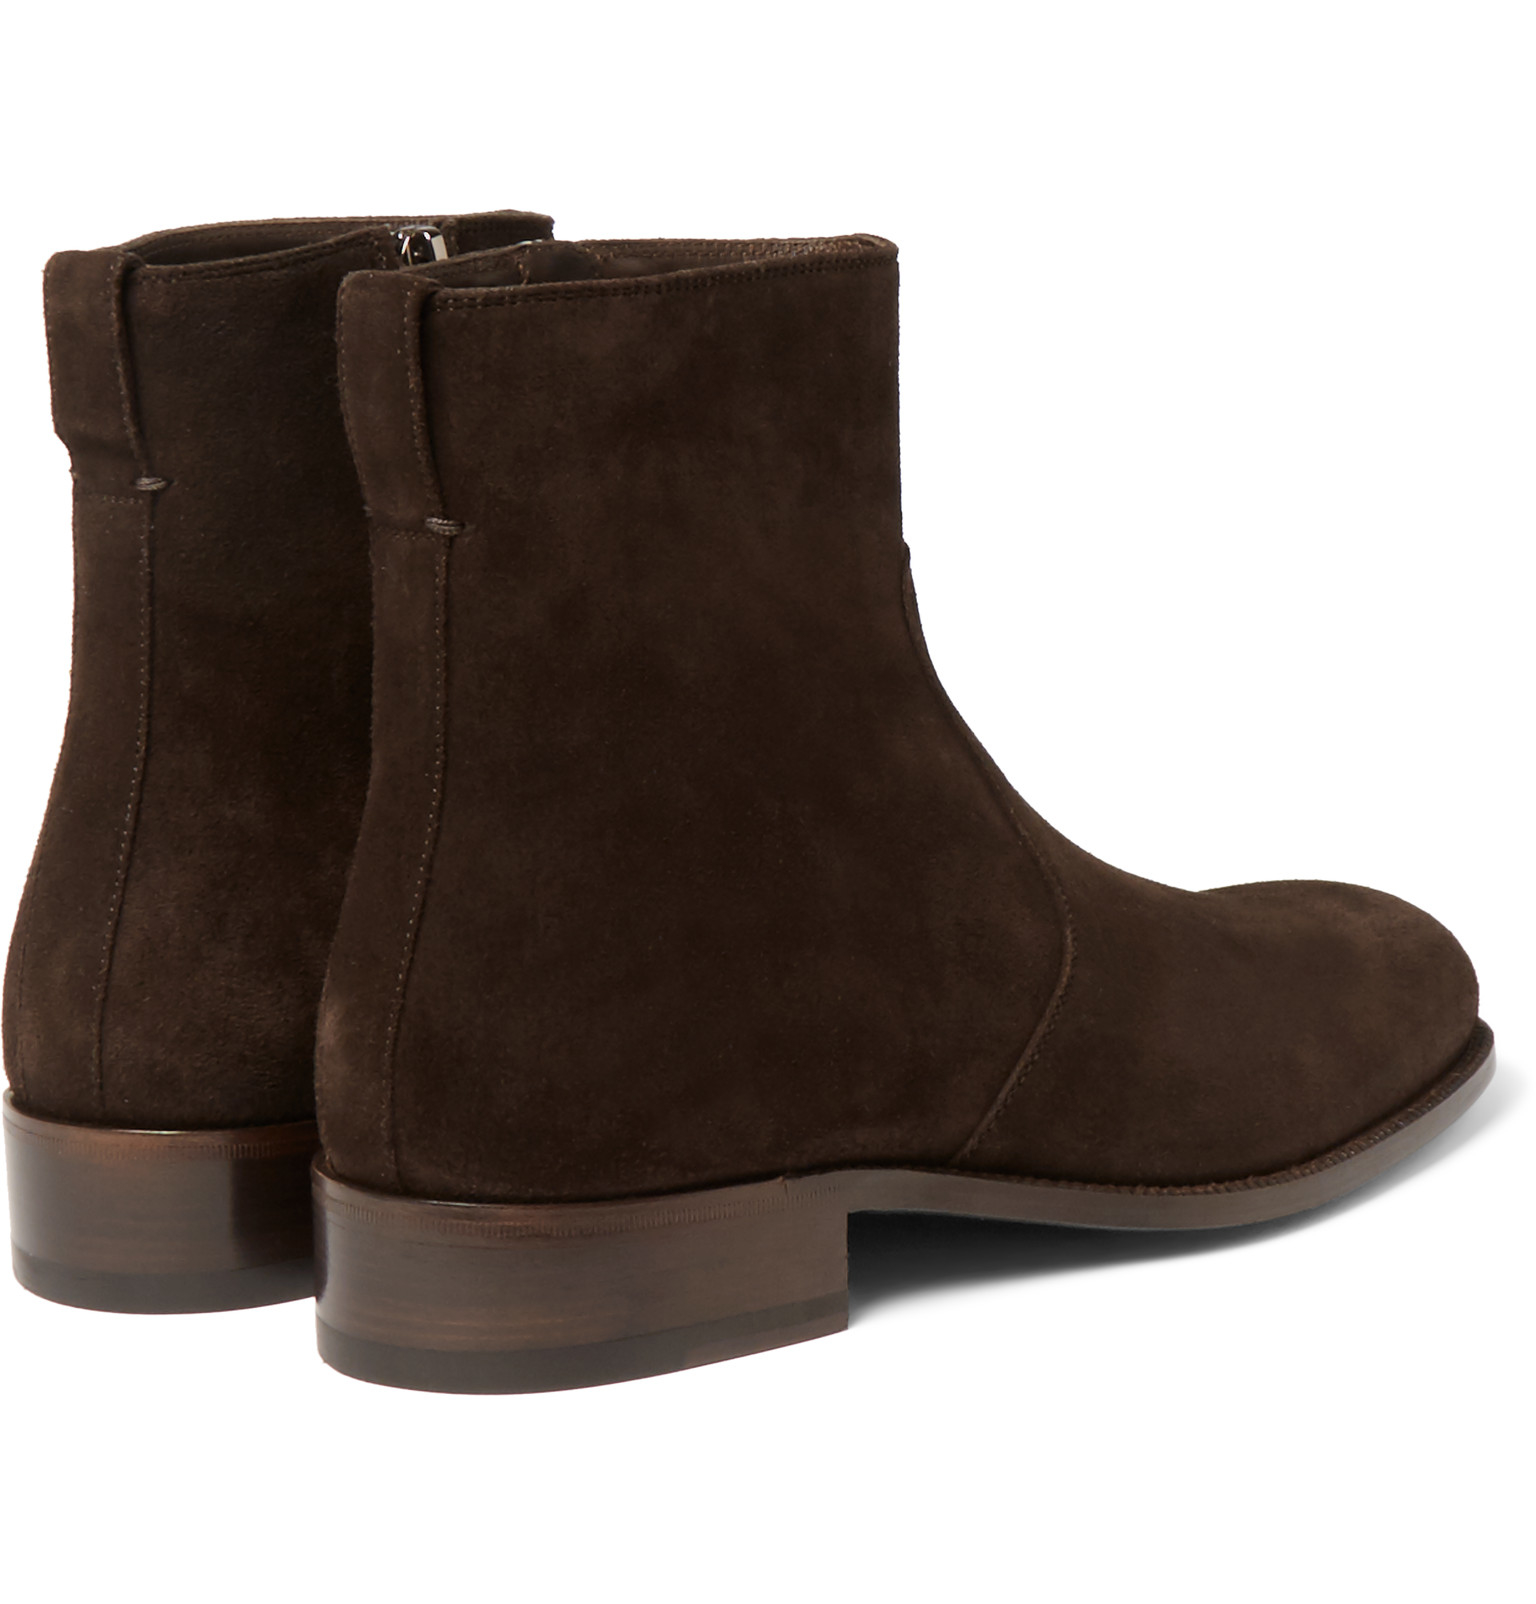 tom ford wilson suede boots in brown for lyst